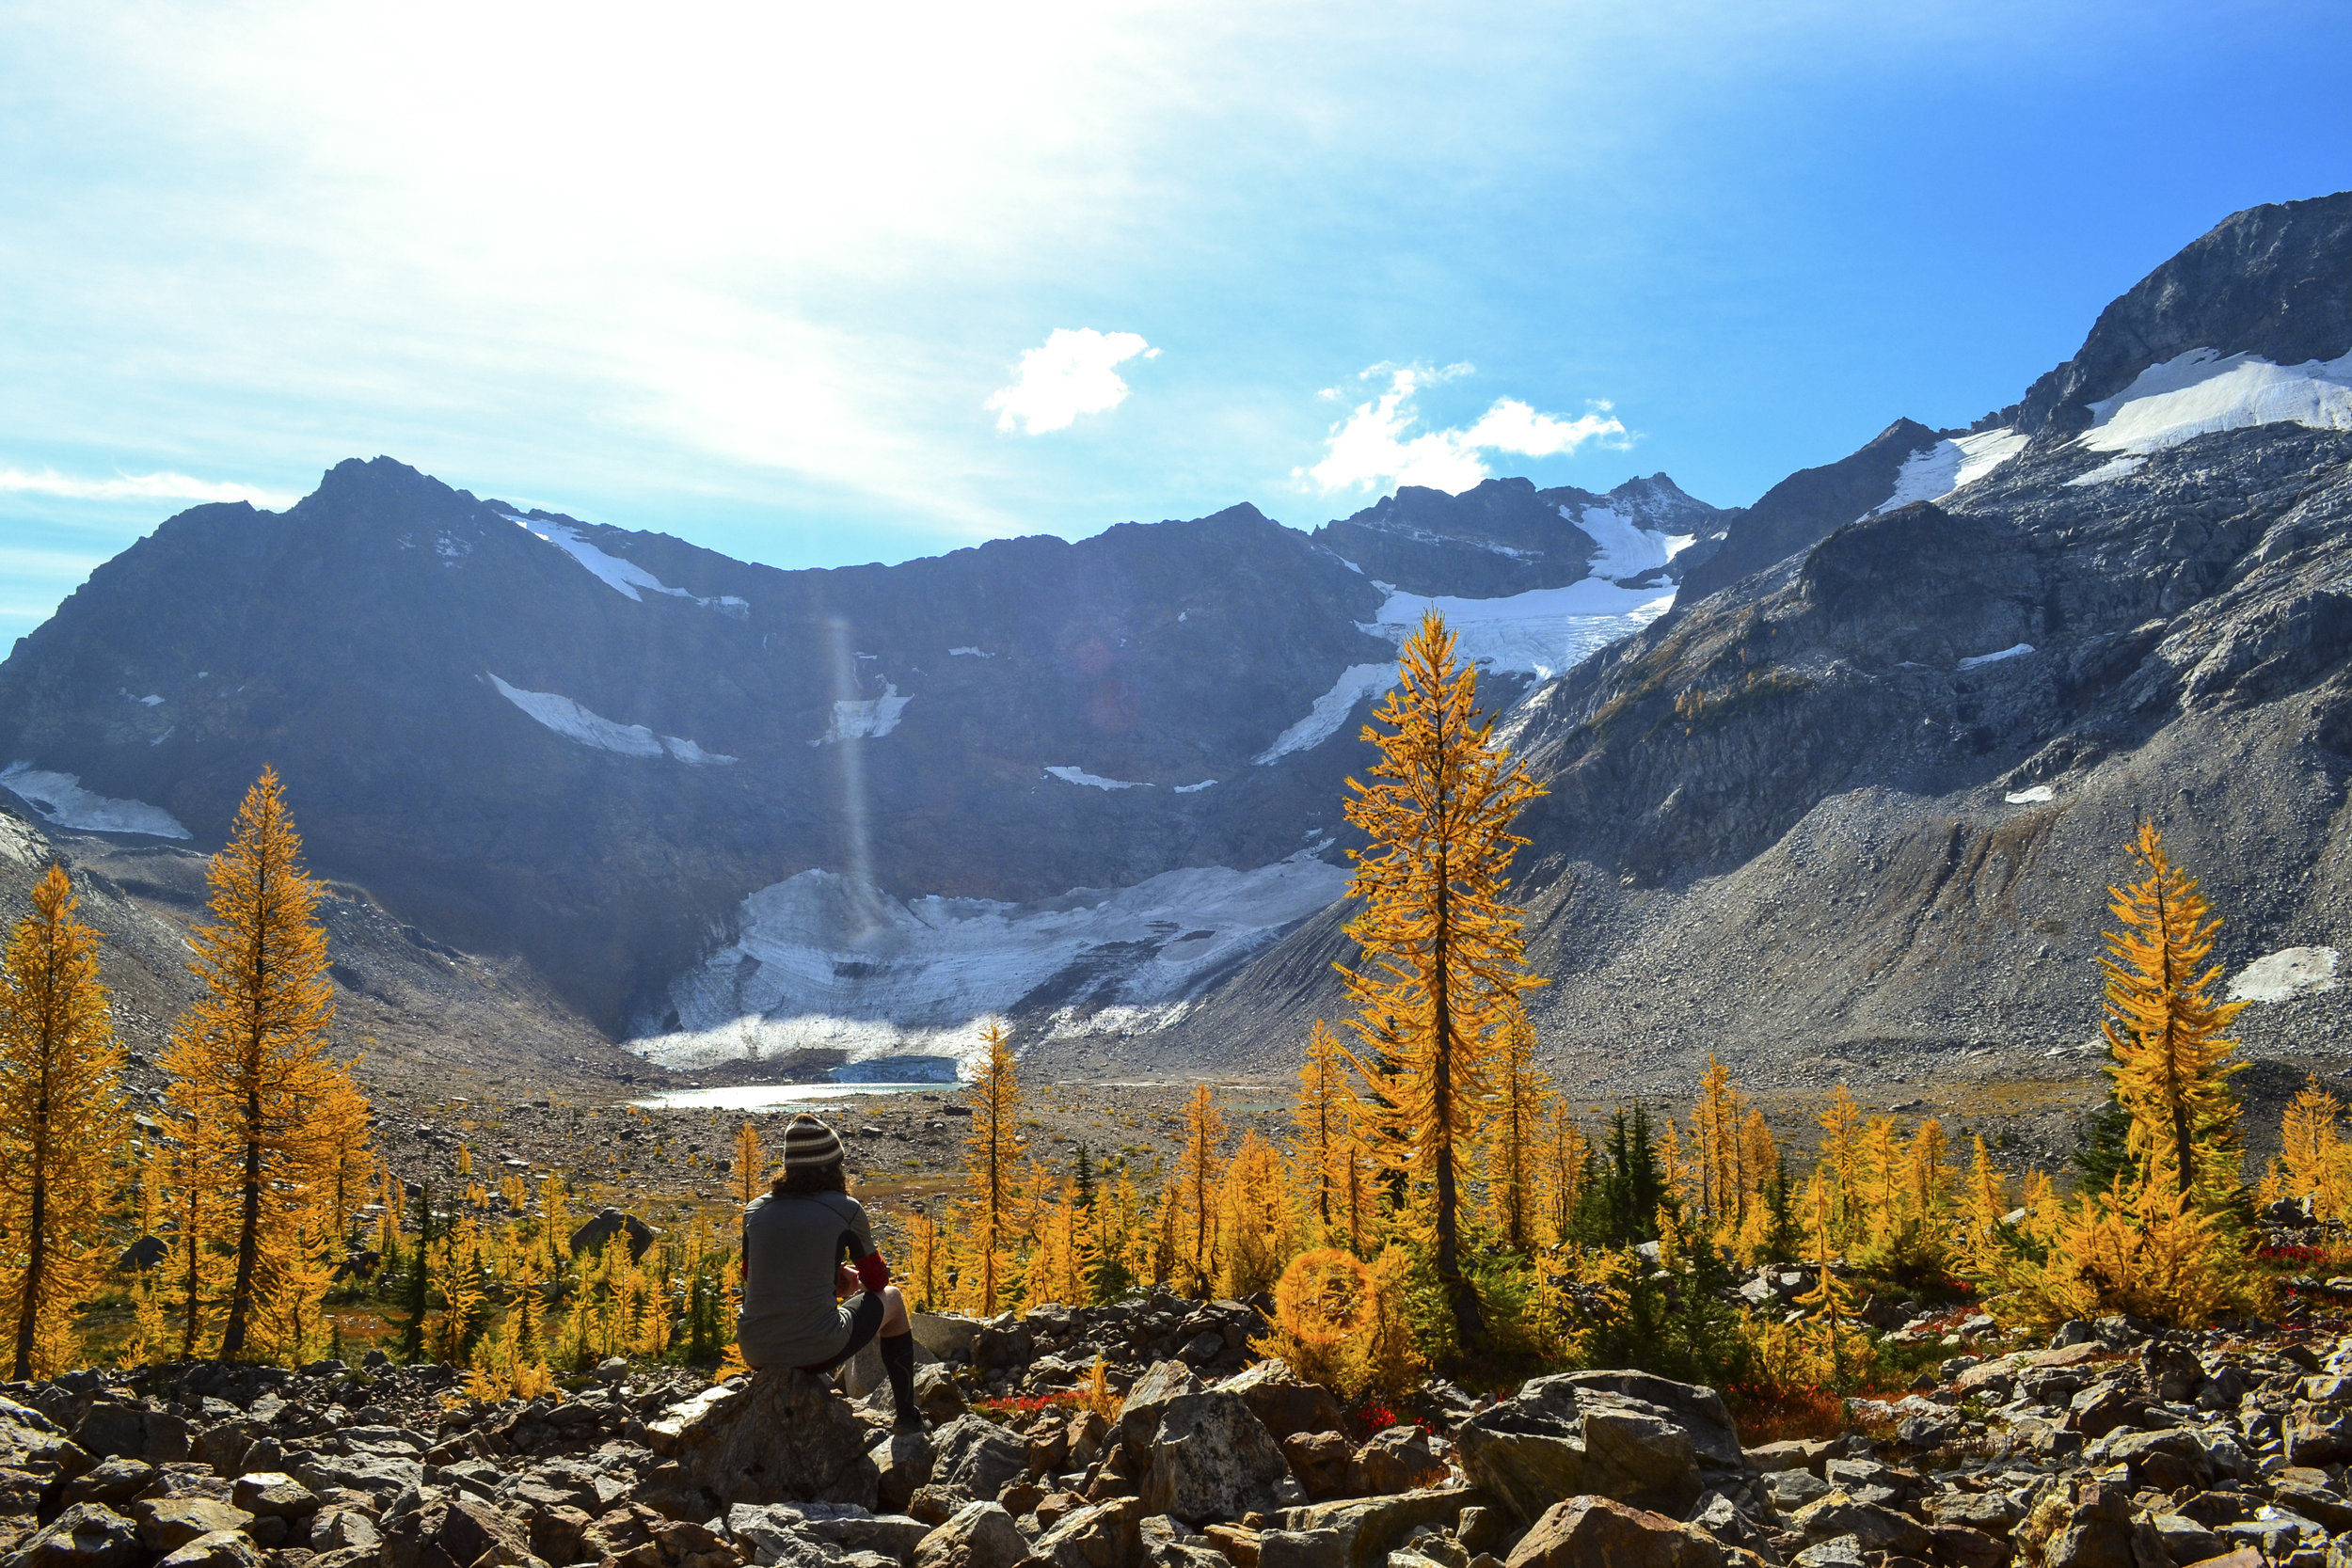 Autumn camping and hiking in the Cascades. Photo by Jacob Hall.